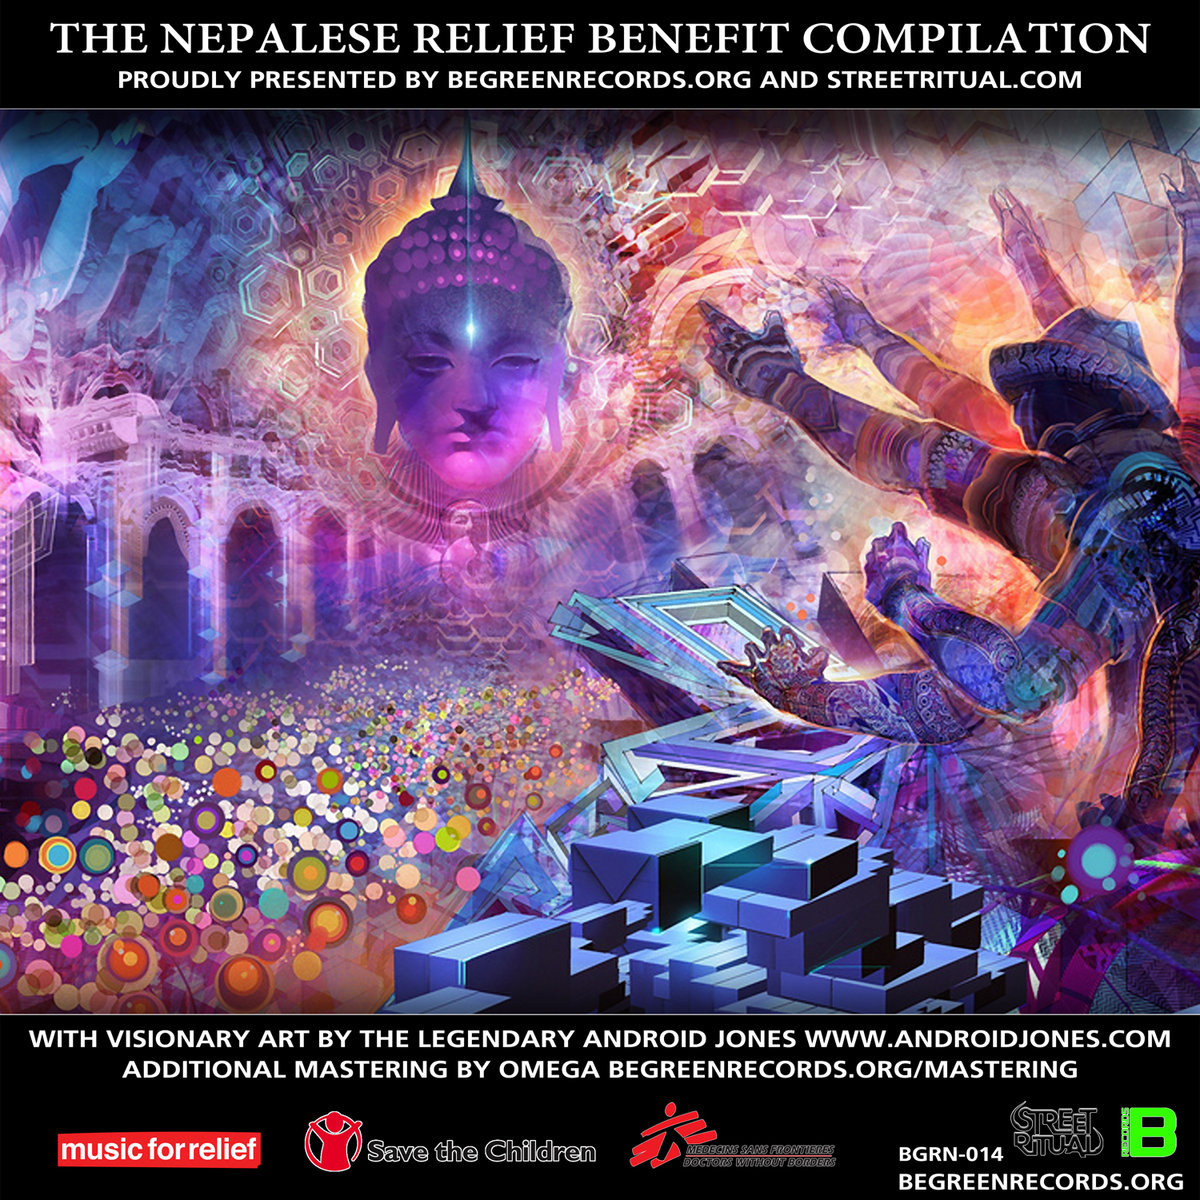 ill.Gates - Withinside @ 'Various Artists - The Nepalese Relief Benefit Compilation' album (bass, electronic)